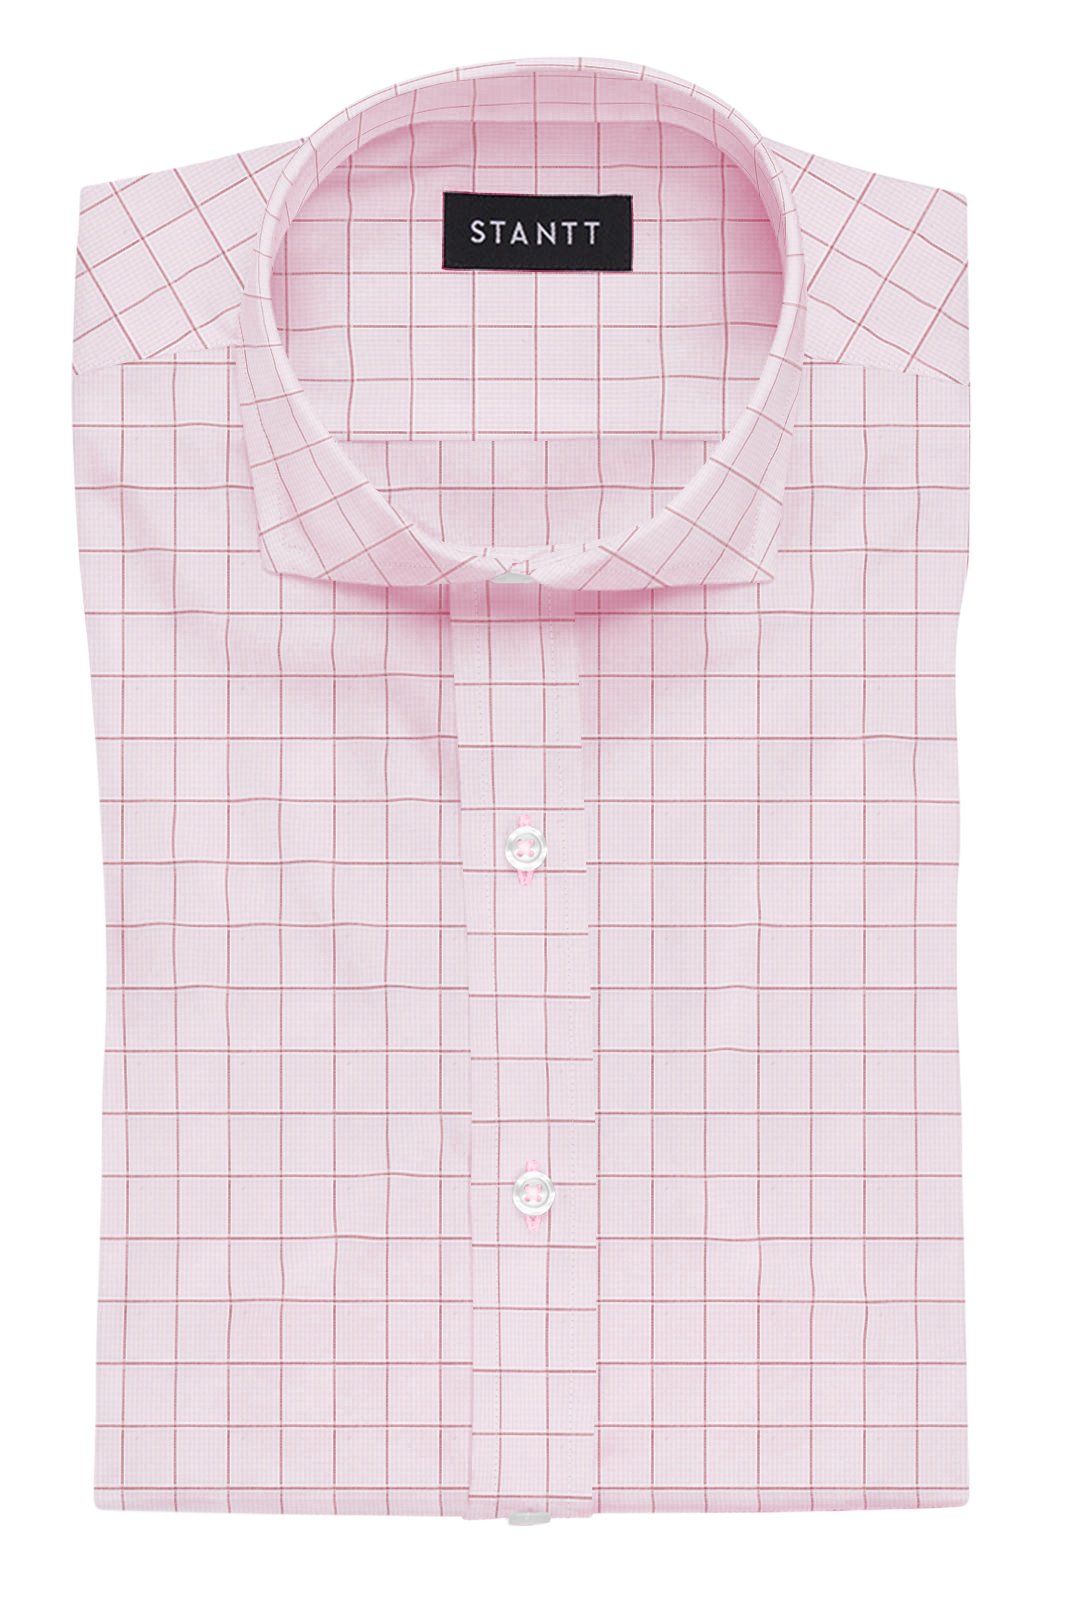 Light Pink Prince of Wales Check: Cutaway Collar, French Cuff